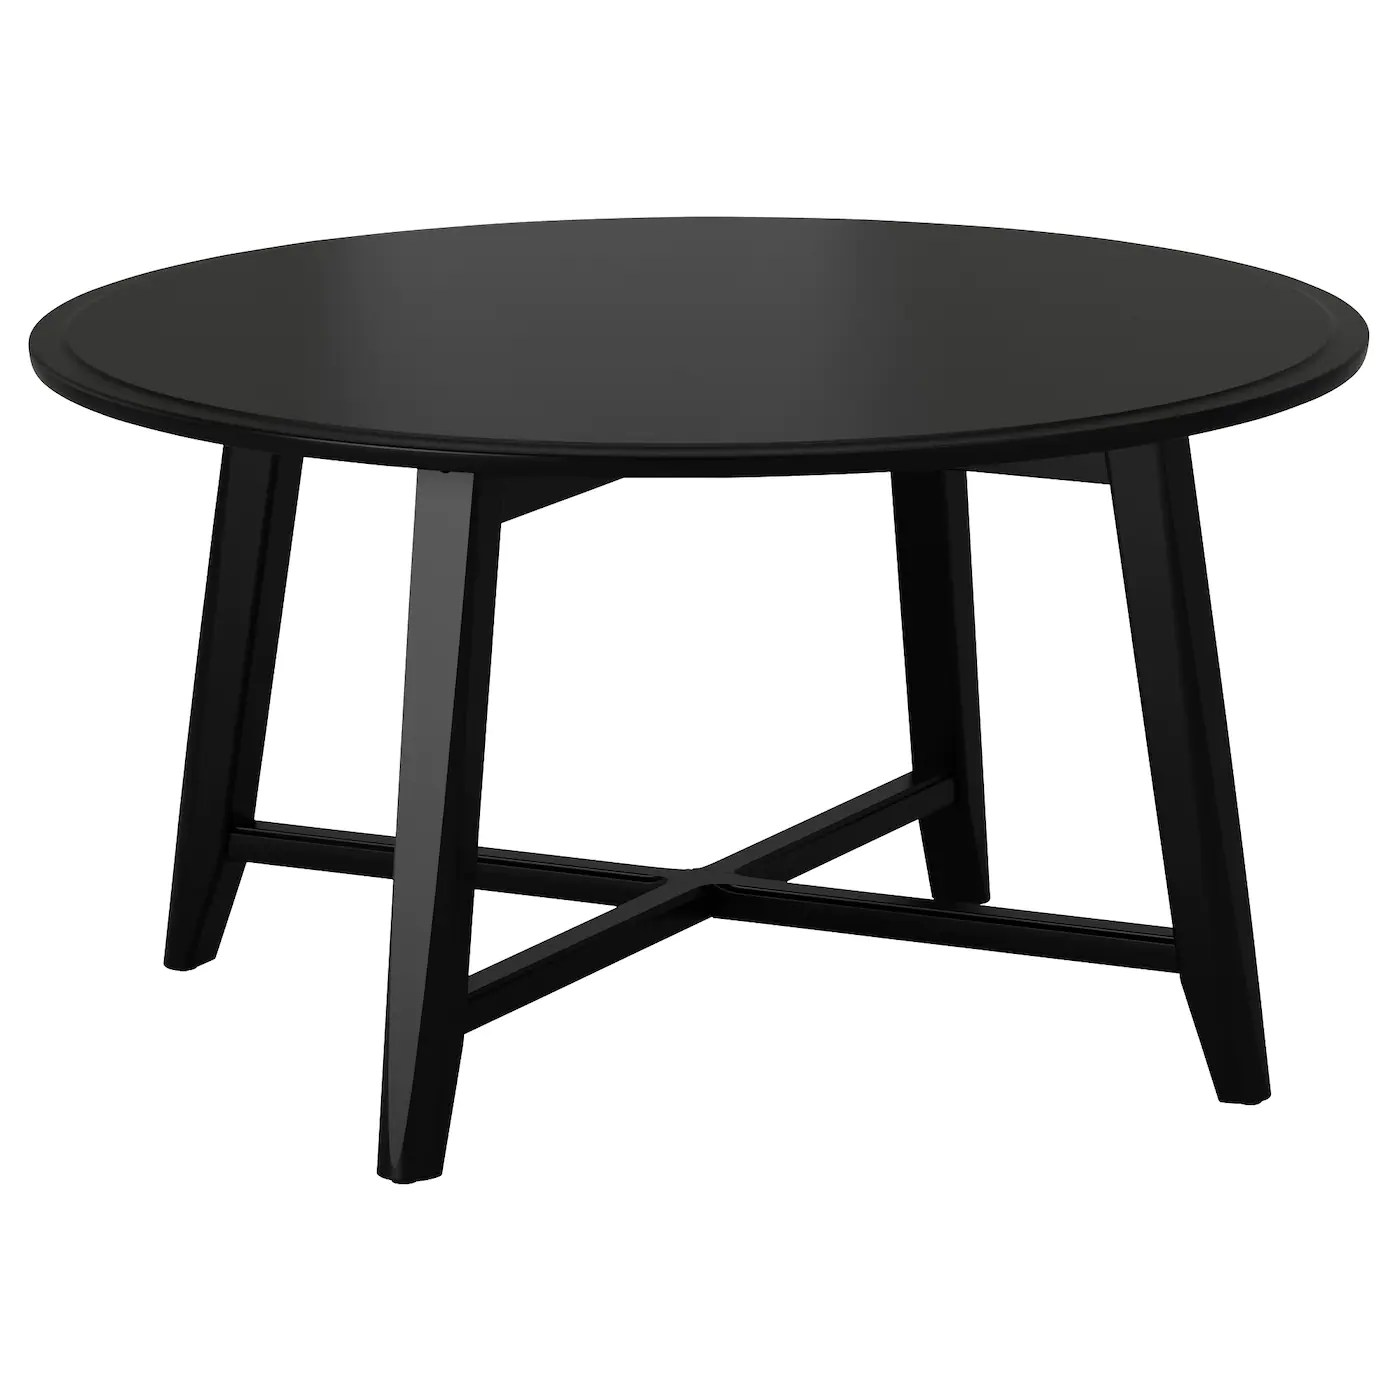 Ikea Table Basse Noir Kragsta Table Basse Noir